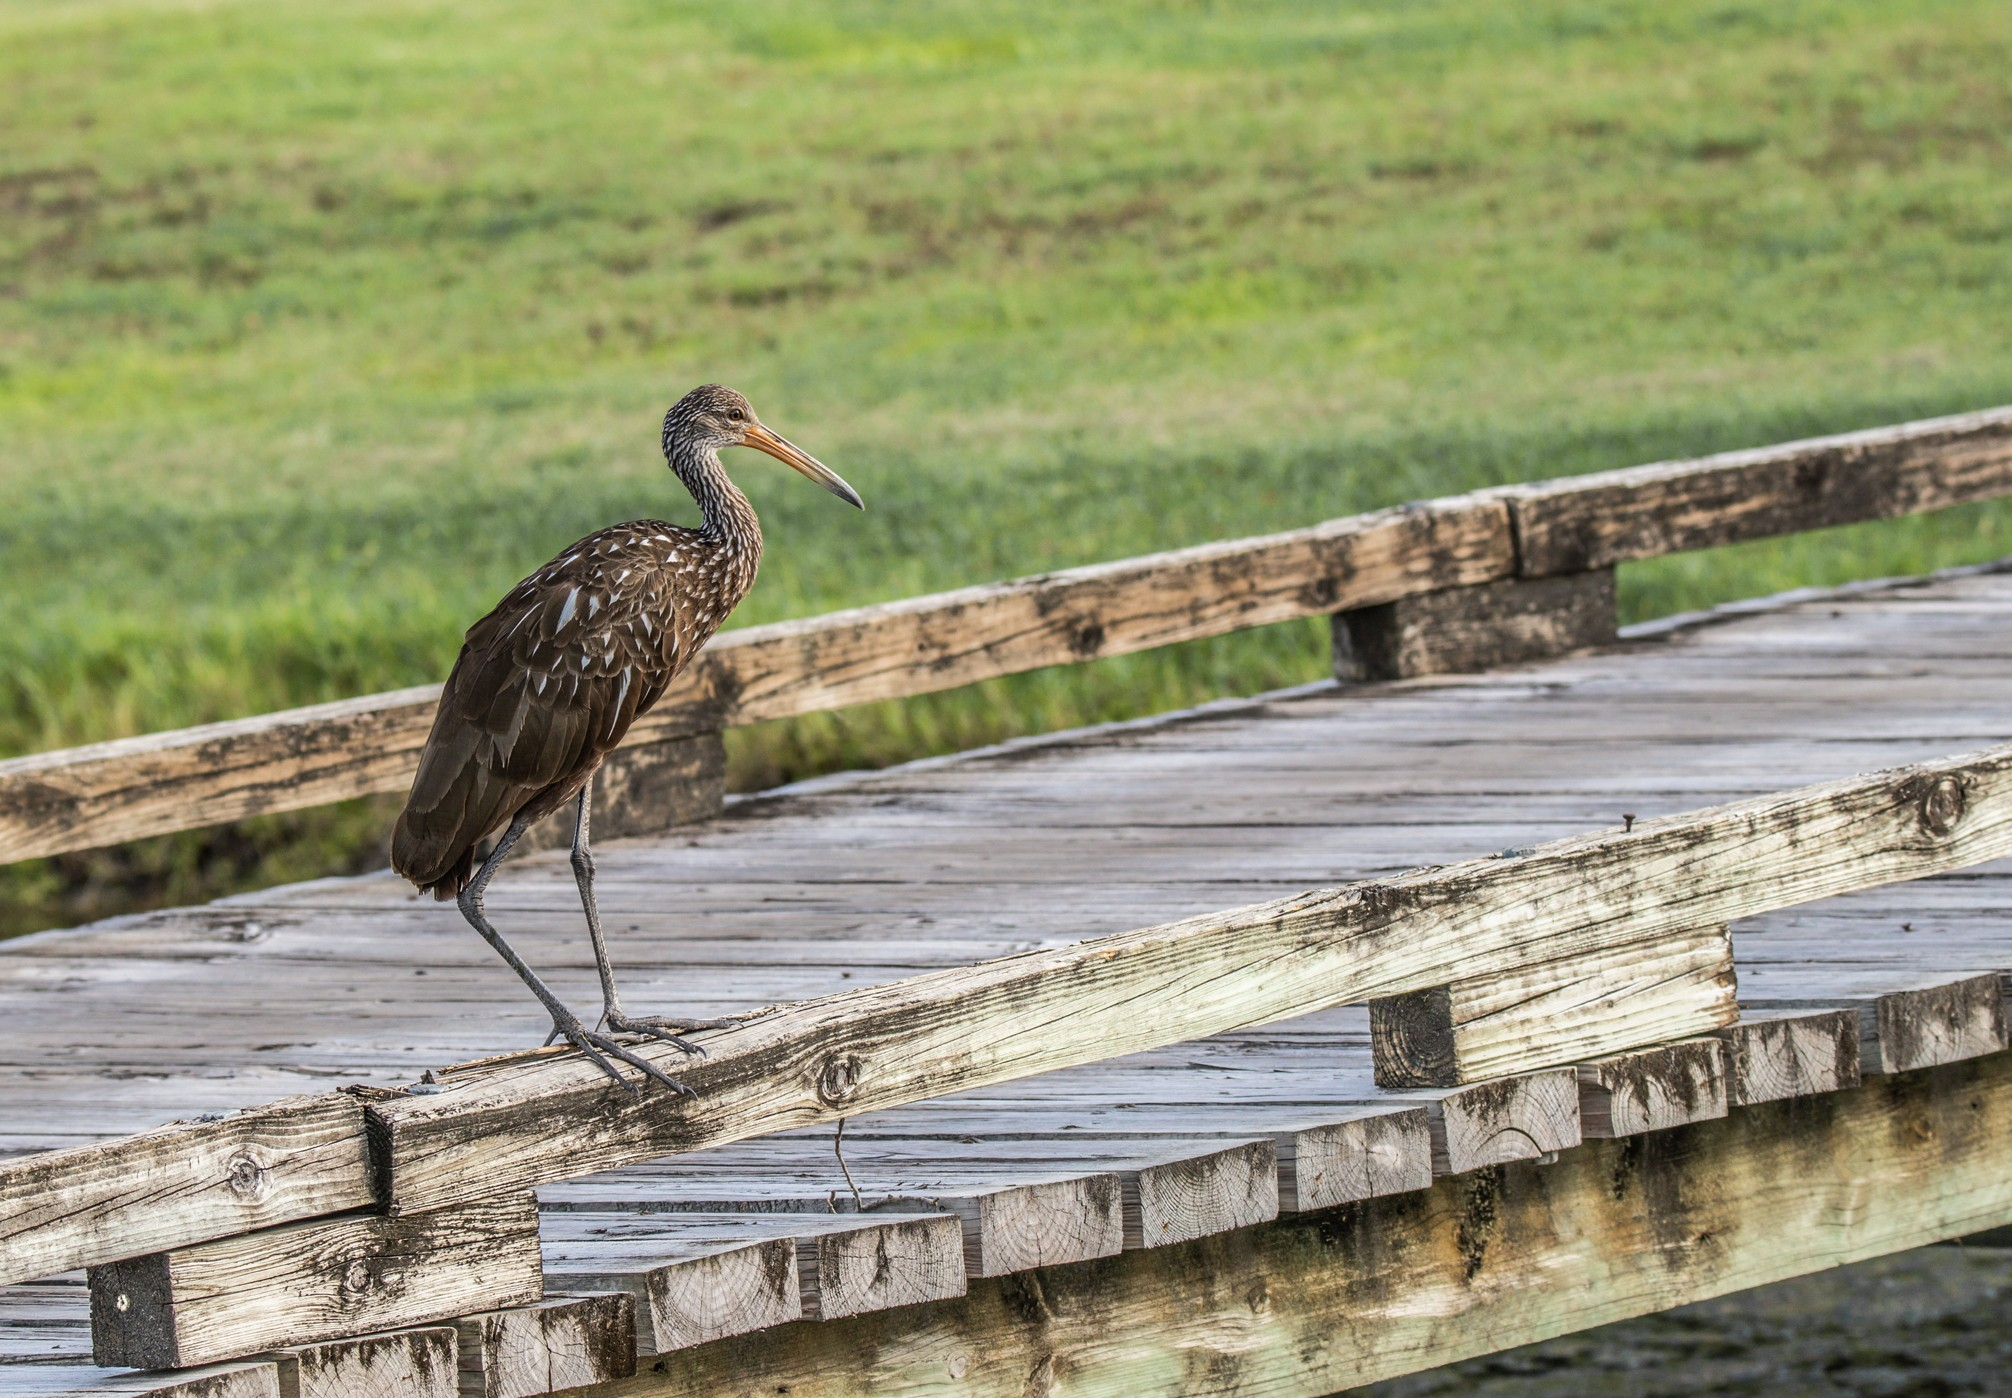 049-Limpkin-on-bridge-cvt-fn.jpg